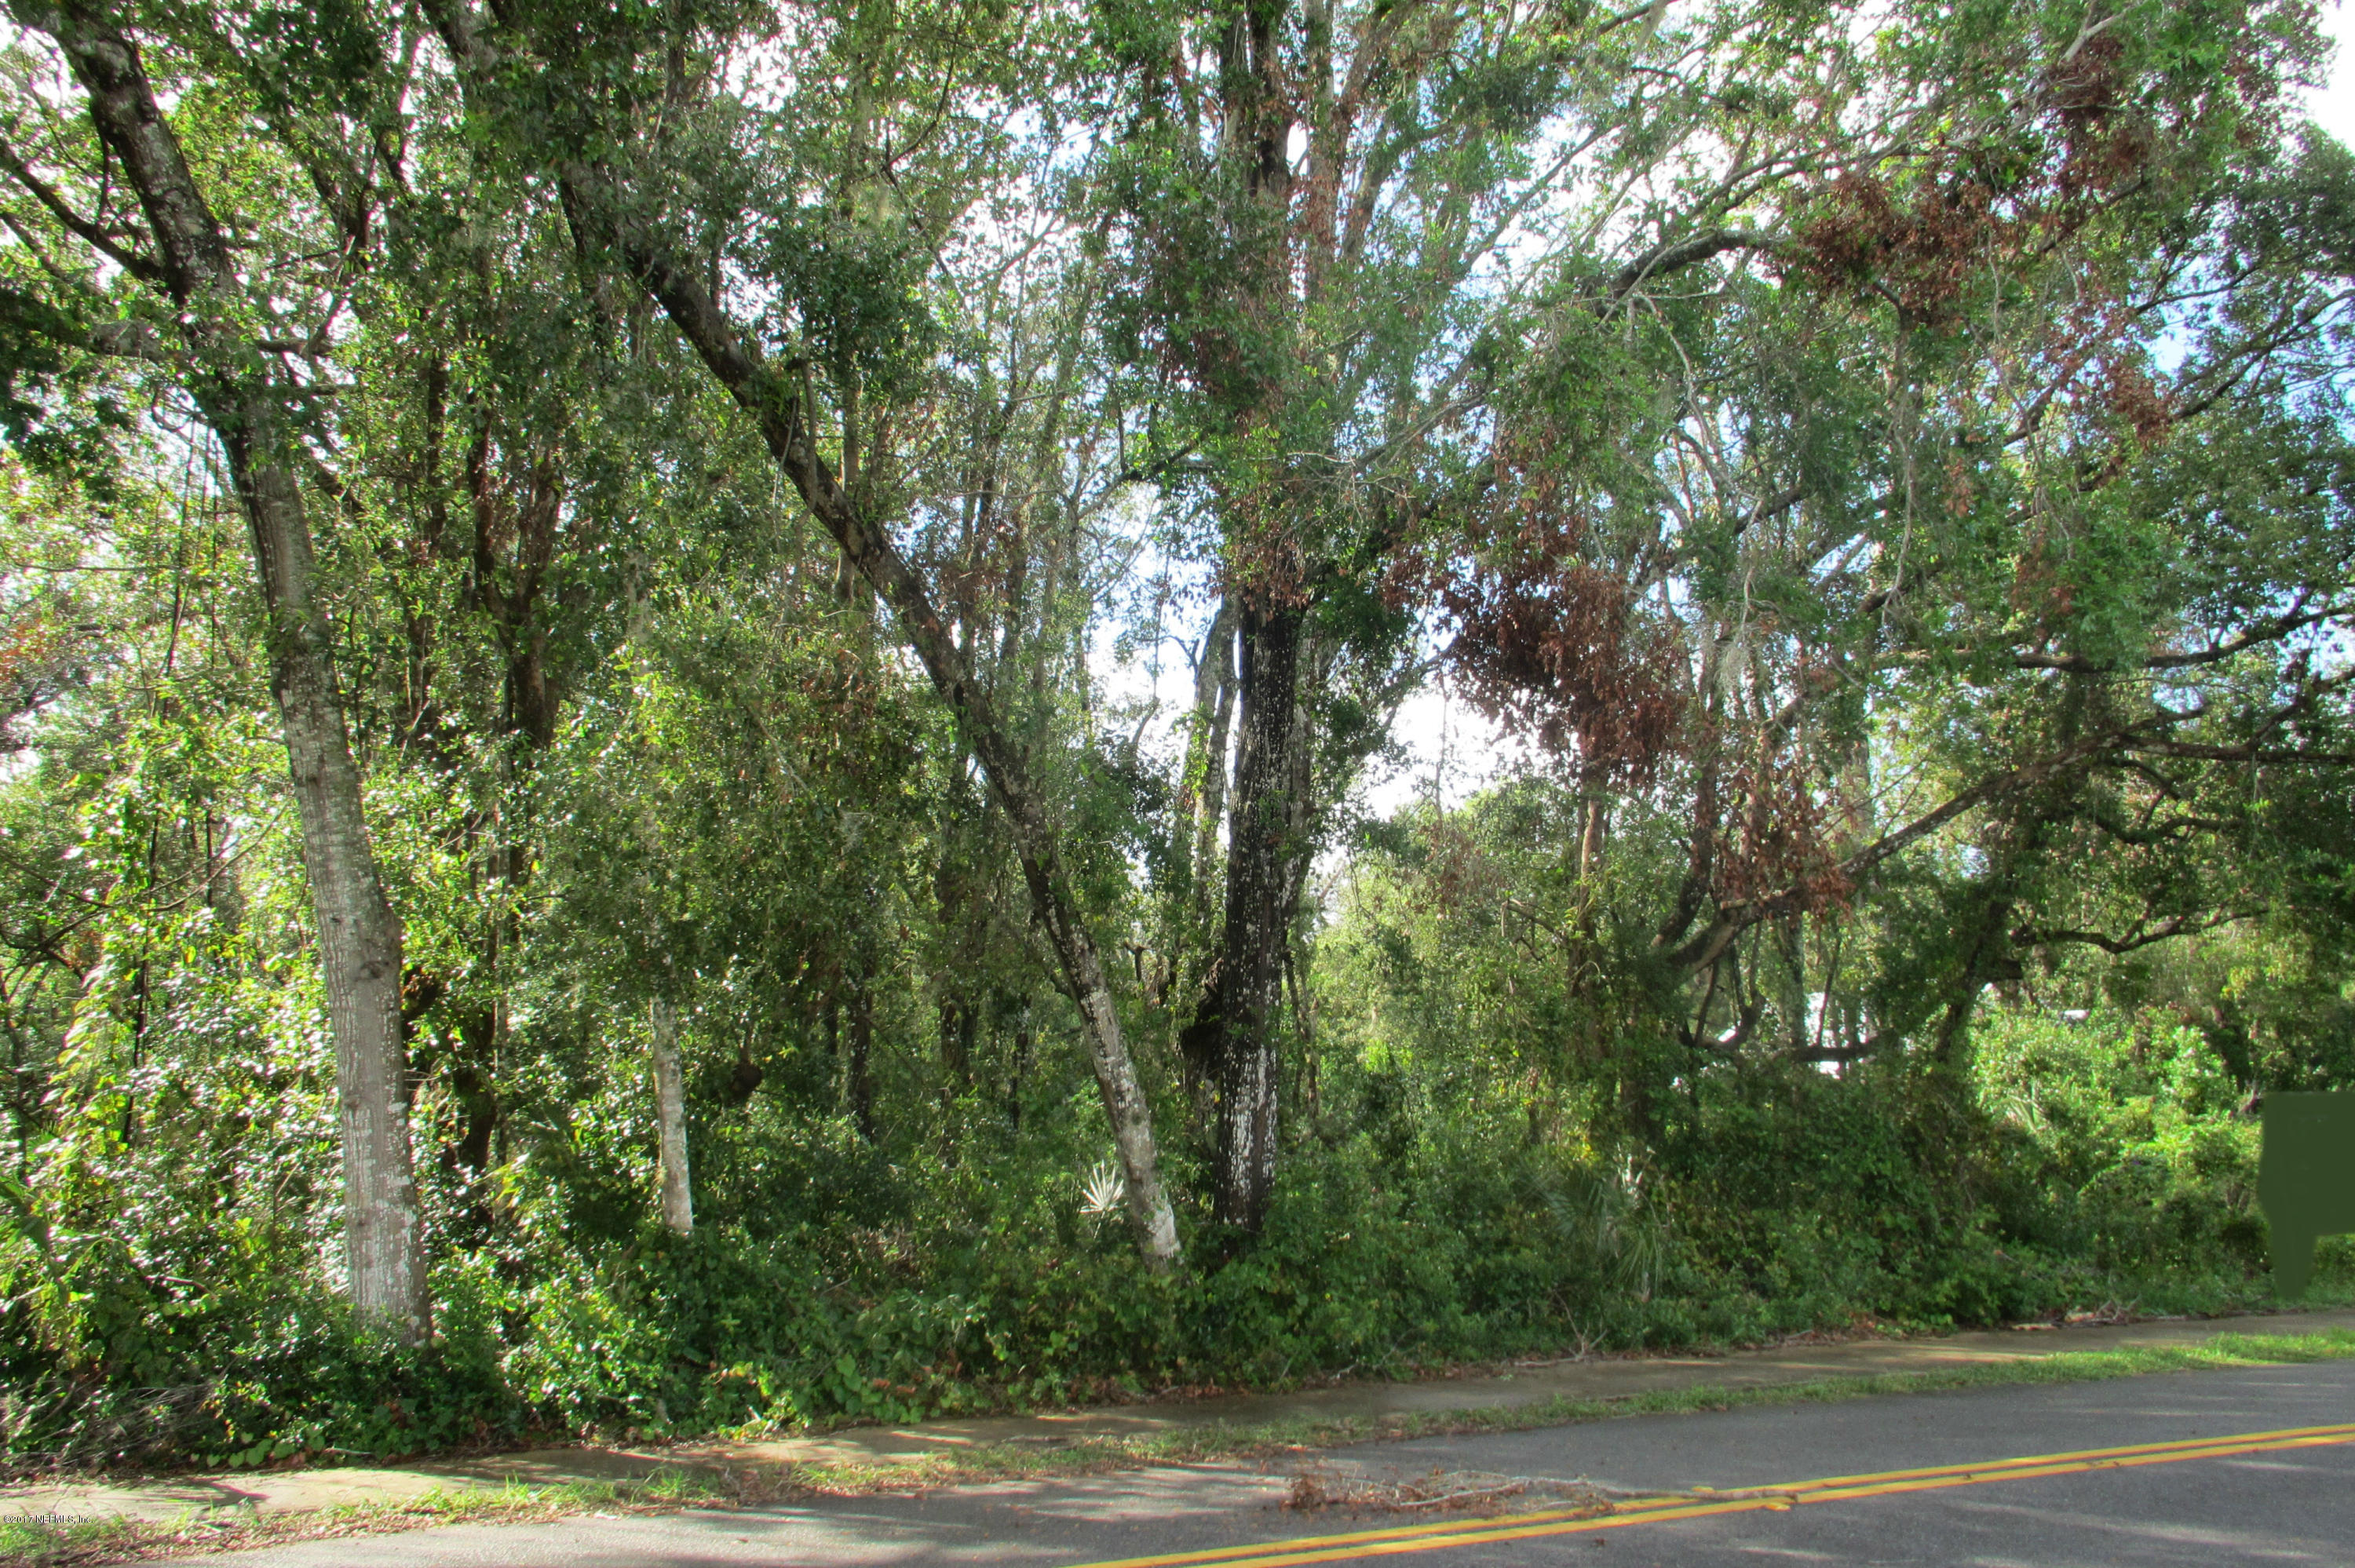 000 SUMMIT-VERNON, CRESCENT CITY, FLORIDA 32112, ,Vacant land,For sale,SUMMIT-VERNON,904712